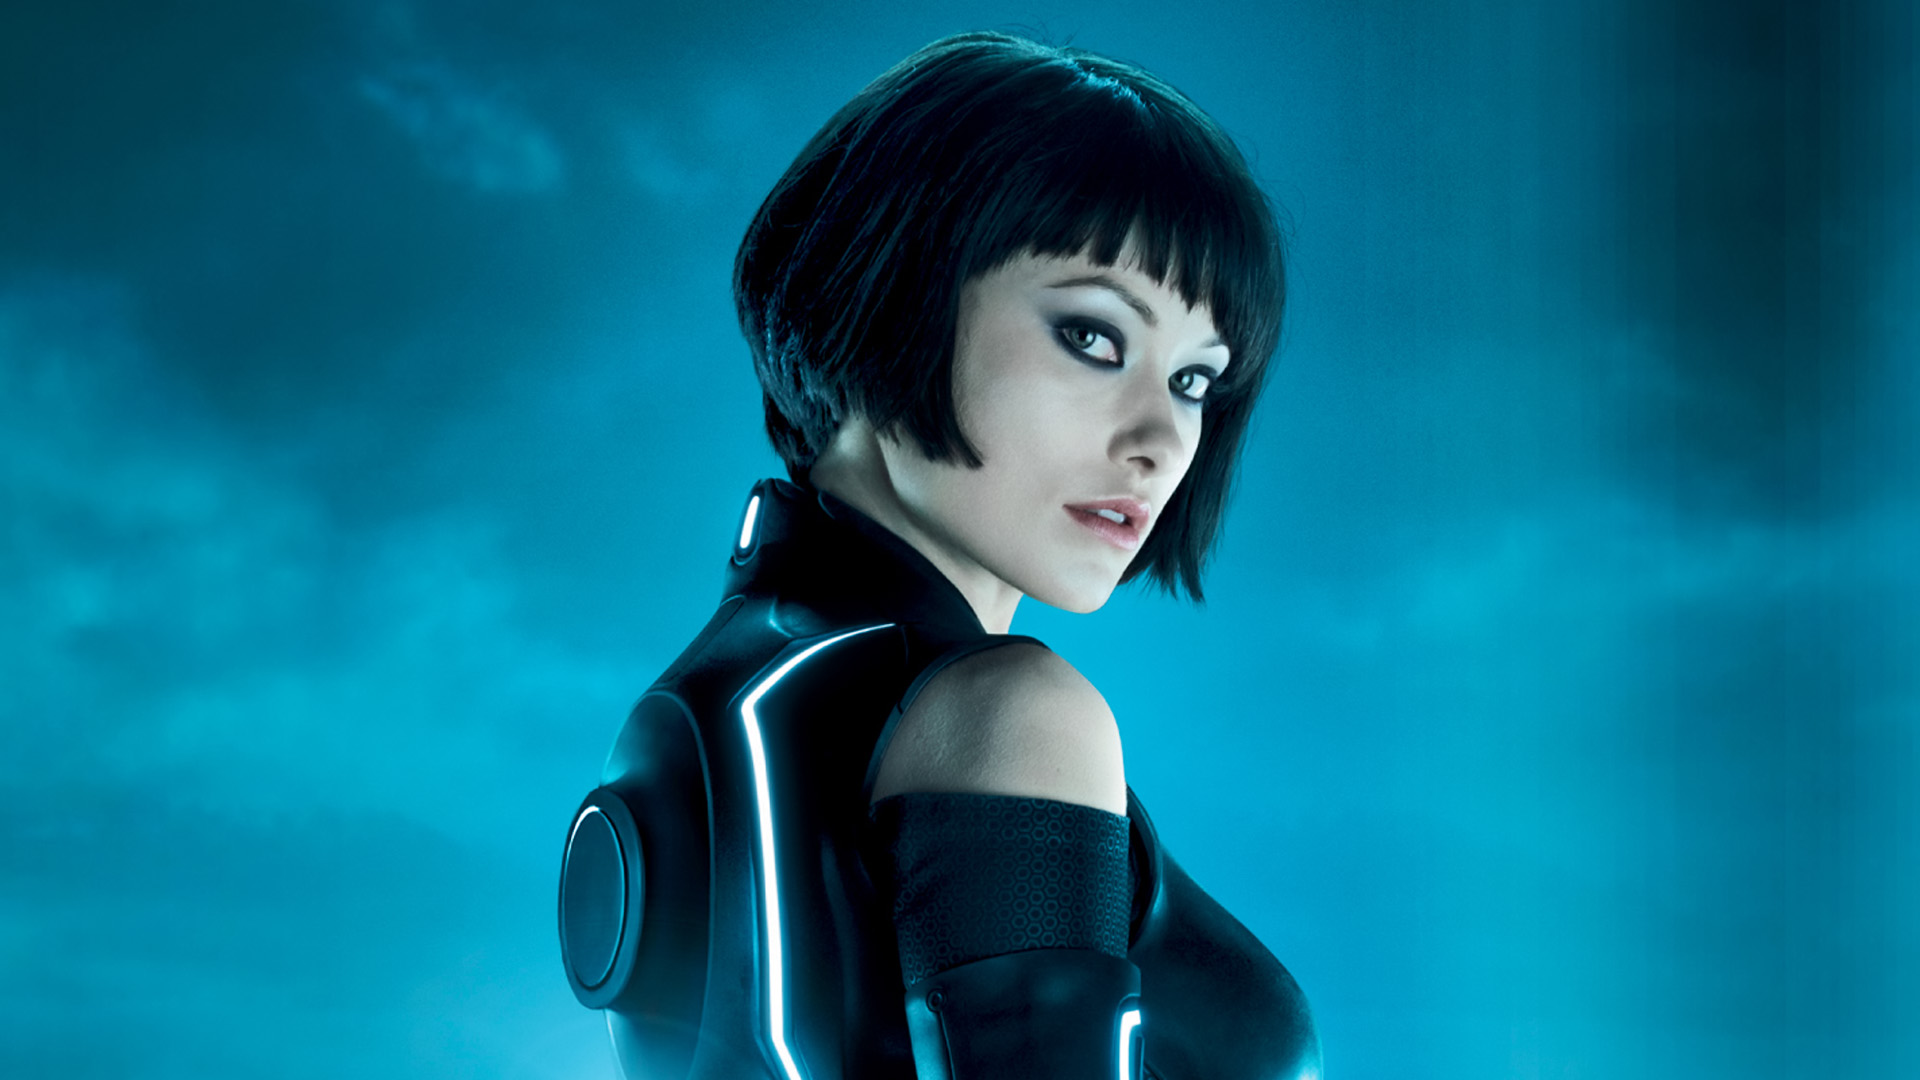 Tron 3 Not Going Forward at Disney - Welcome to the Legion ...